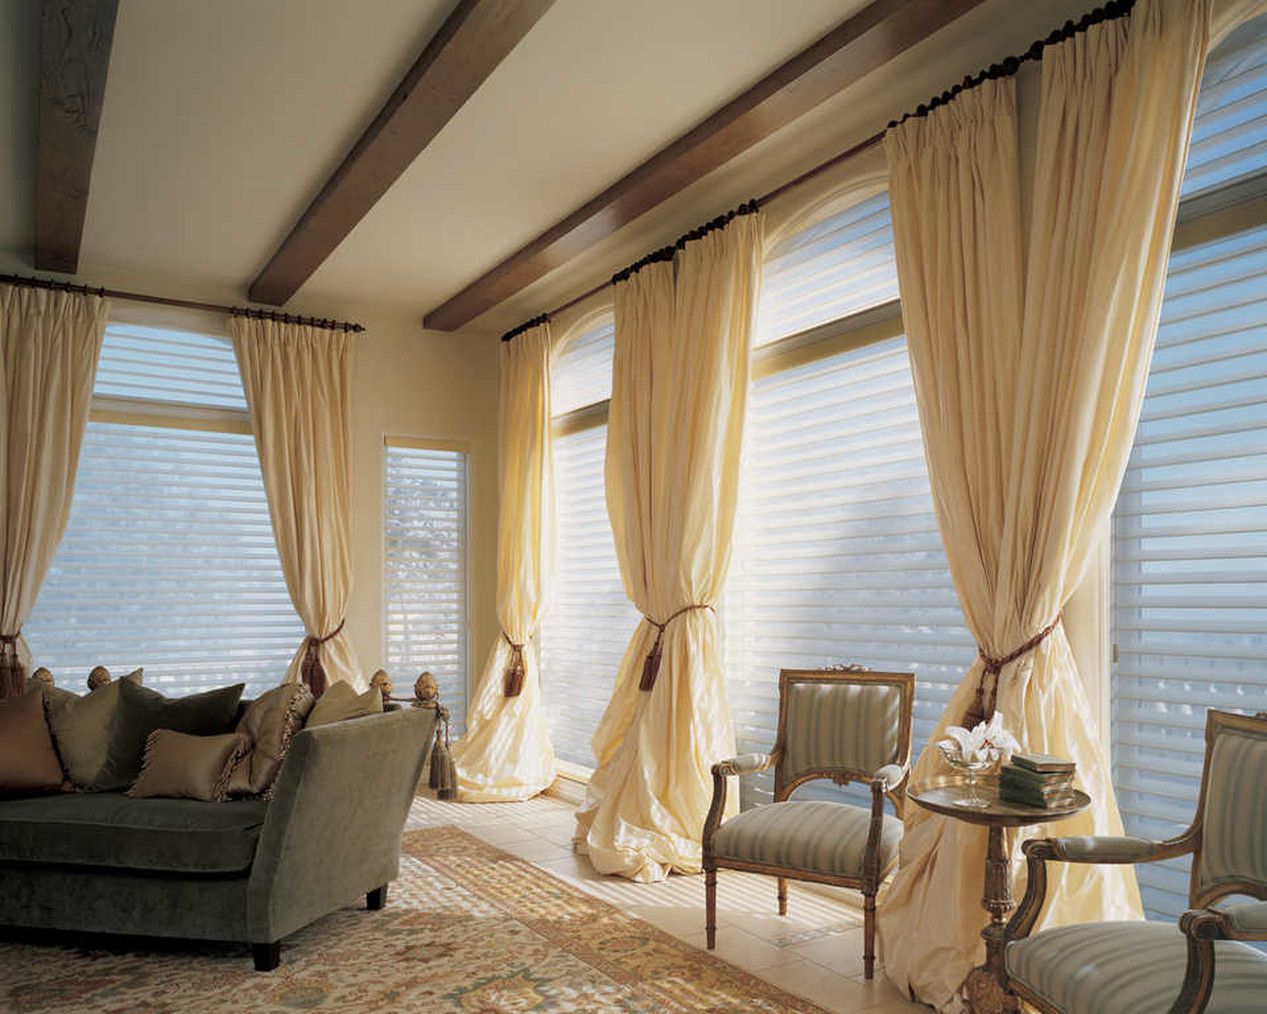 Decor Blinds, Sheer & Sliding Panels | Decor Blinds and Shades